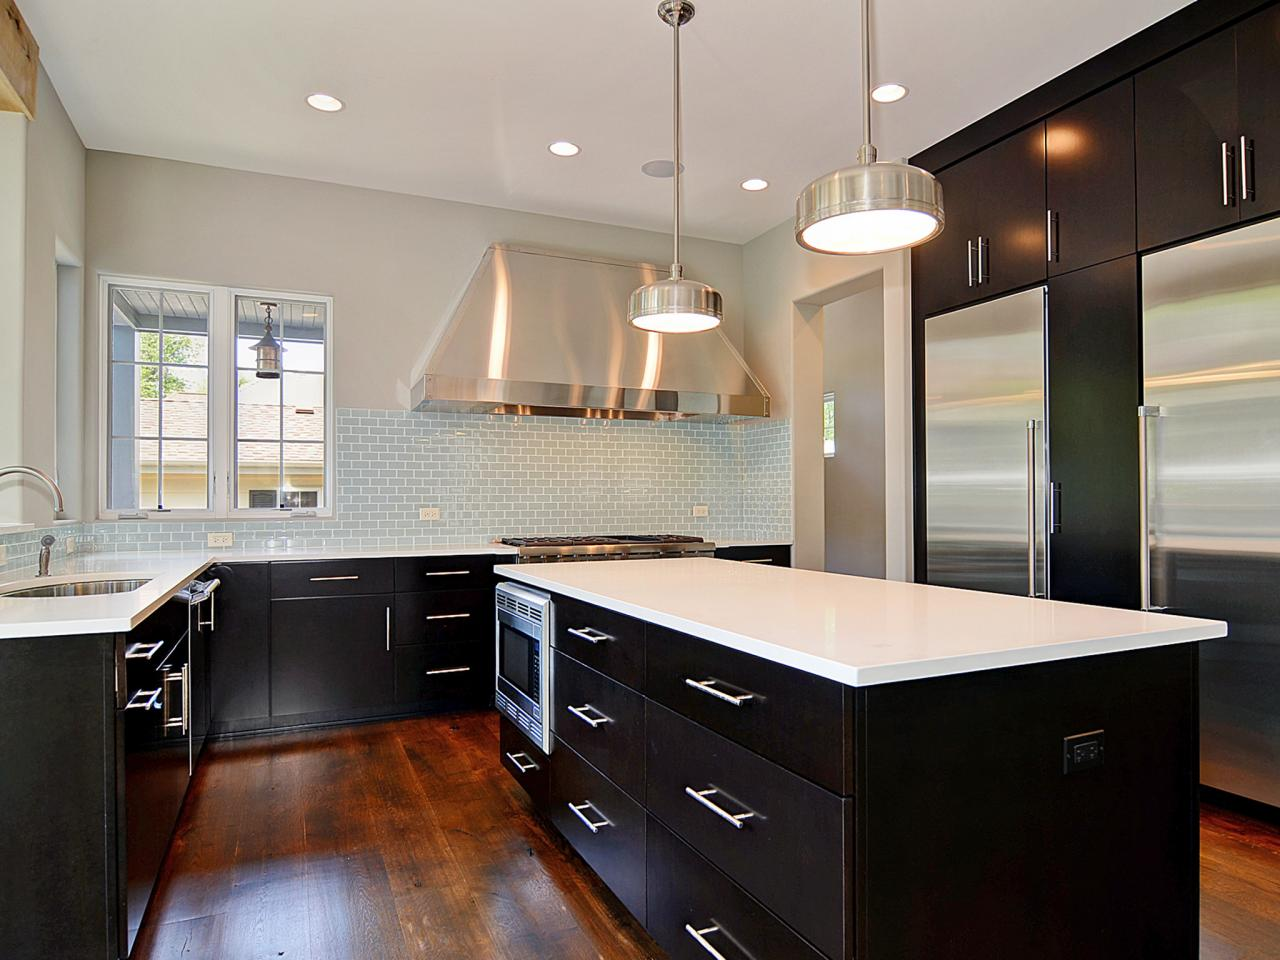 Kitchen Design Black Cabinets luxury kitchen design: pictures, ideas & tips from hgtv | hgtv